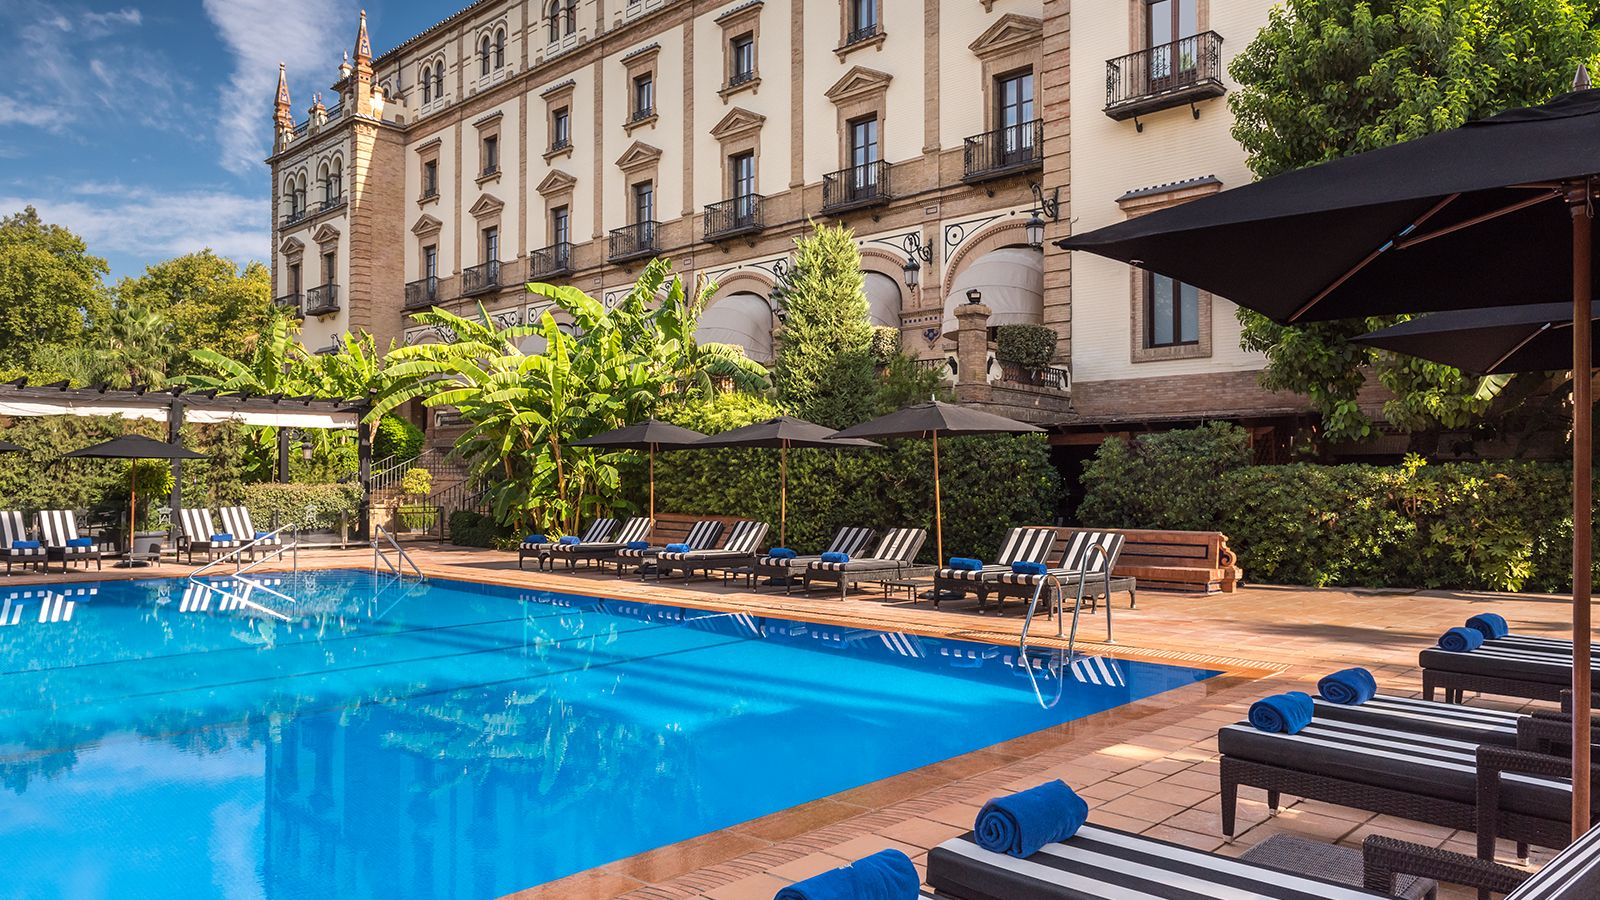 Swimming pool and gardens at Hotel Alfonso XIII, a Luxury Collection Hotel.